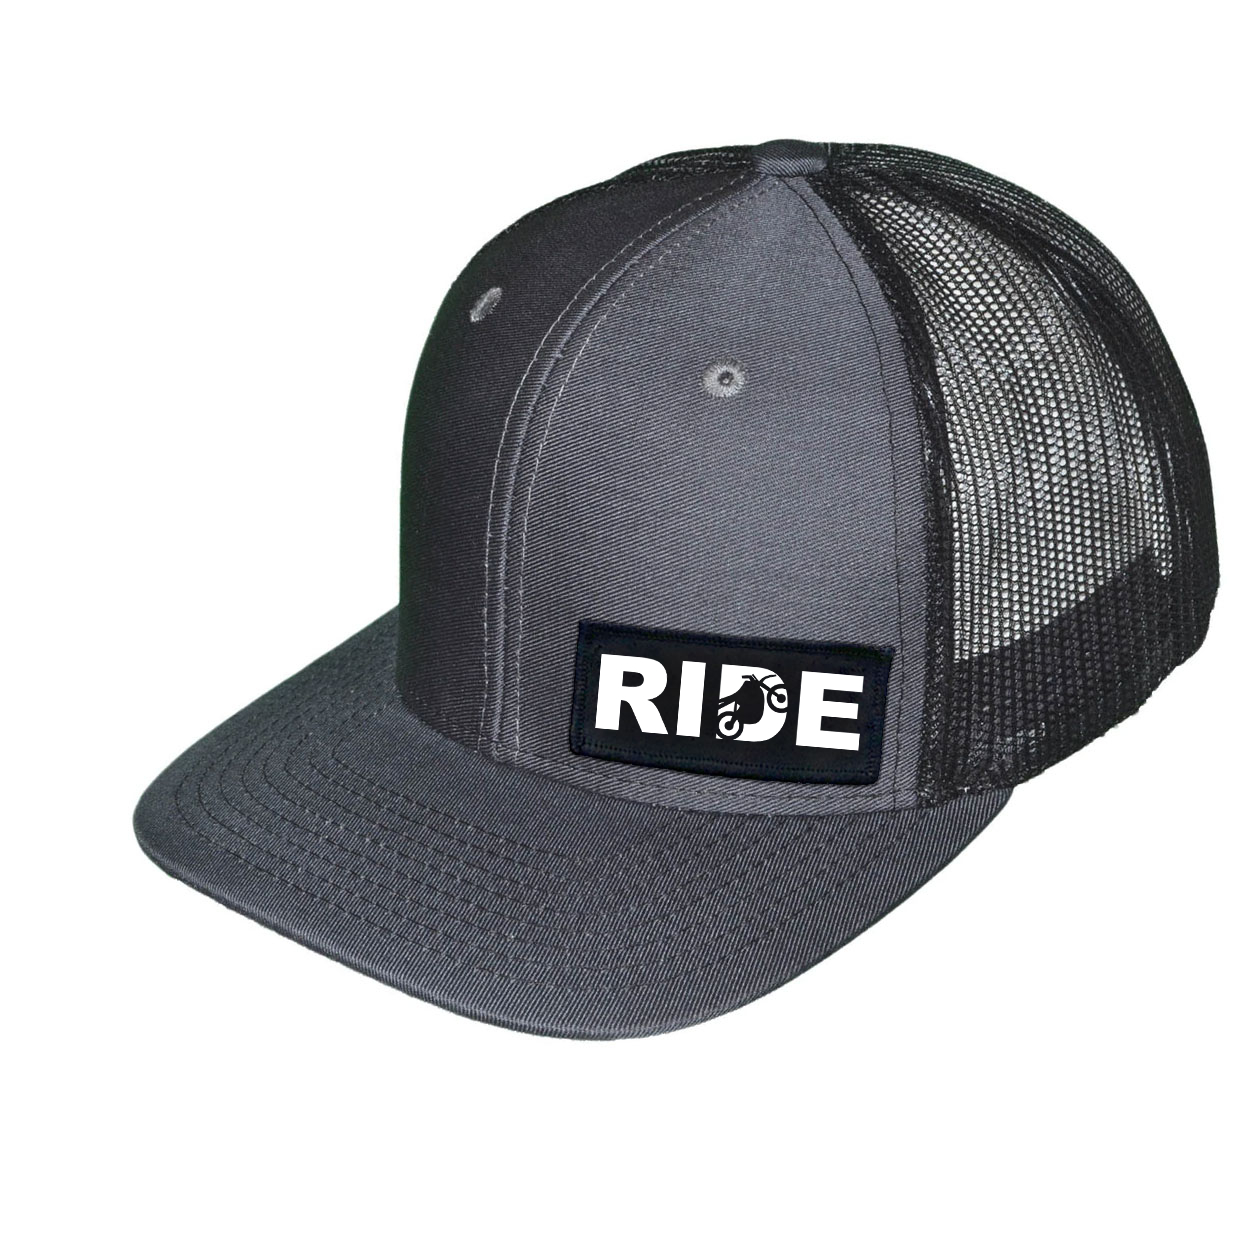 Ride Moto Logo Night Out Woven Patch Snapback Trucker Hat Dark Gray/Black (White Logo)